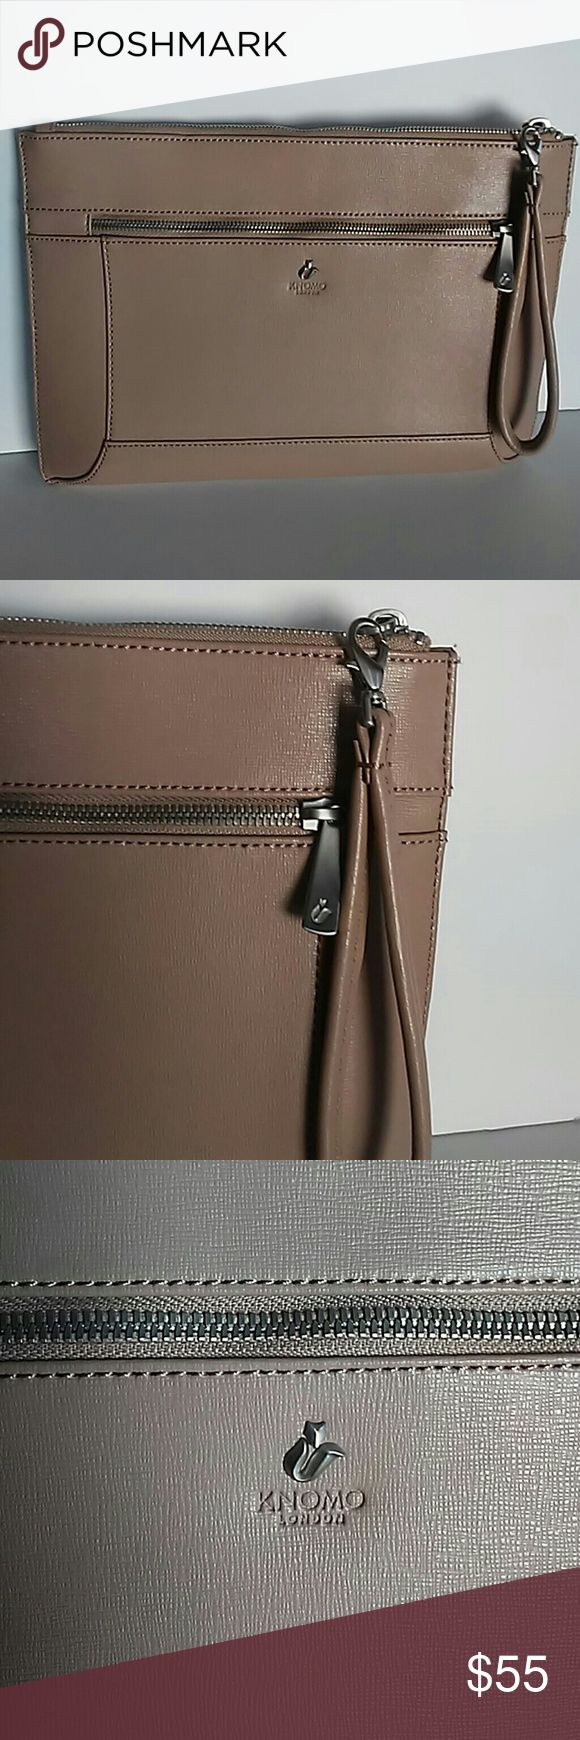 Nee Knomo London Harley iPad Tablet Leather Clutch Knomo London Harley iPad Air Tablet Leather Clutch Handbag Pouch Case Ivory. Material: Leather. Can hold ipad/tablets up to 10 inch. Kinomo London Bags Laptop Bags